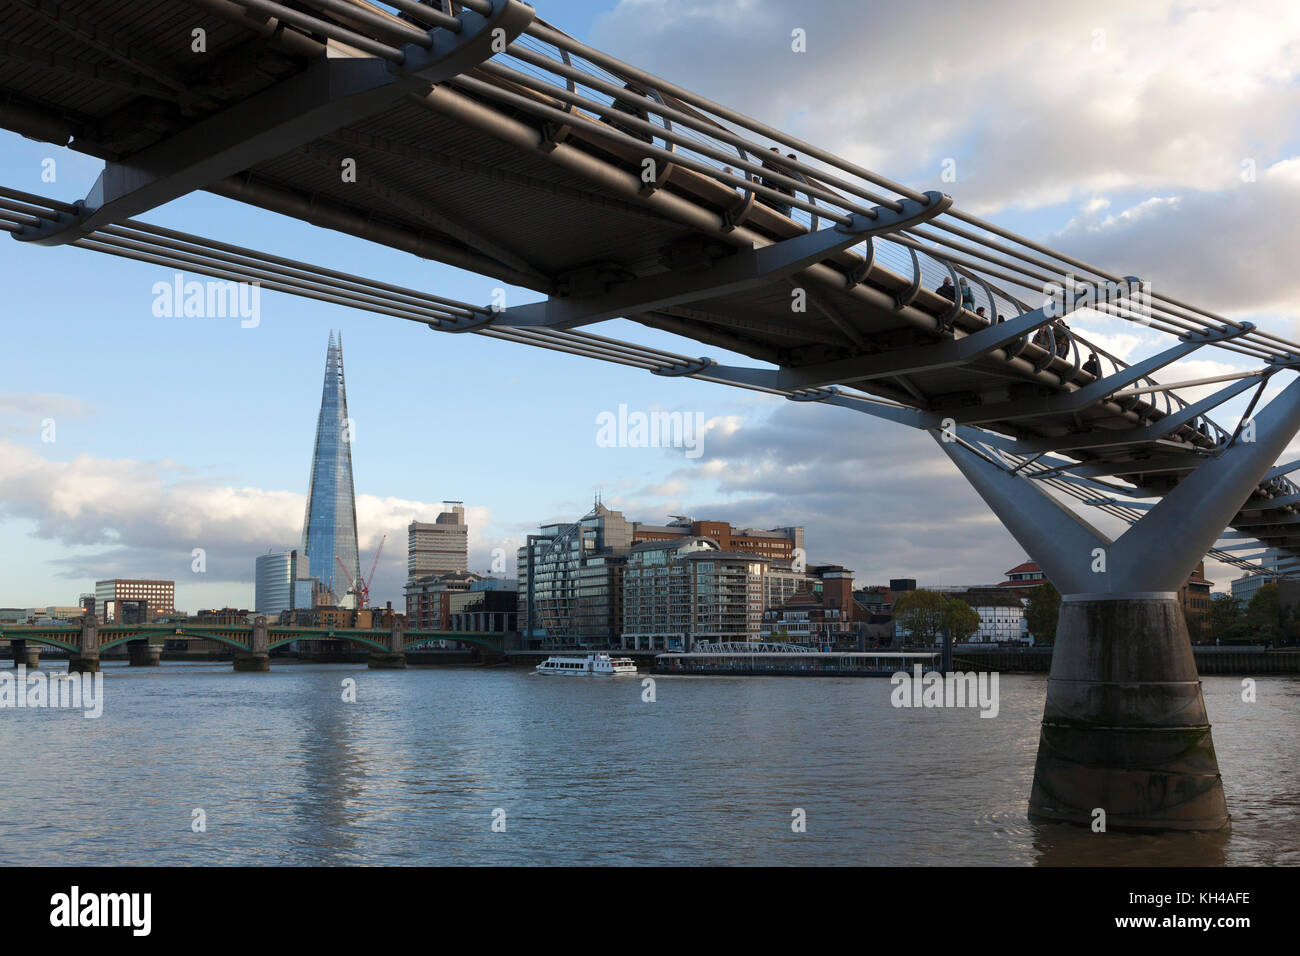 Millennium Bridge with The Shard in the distance, London - Stock Image